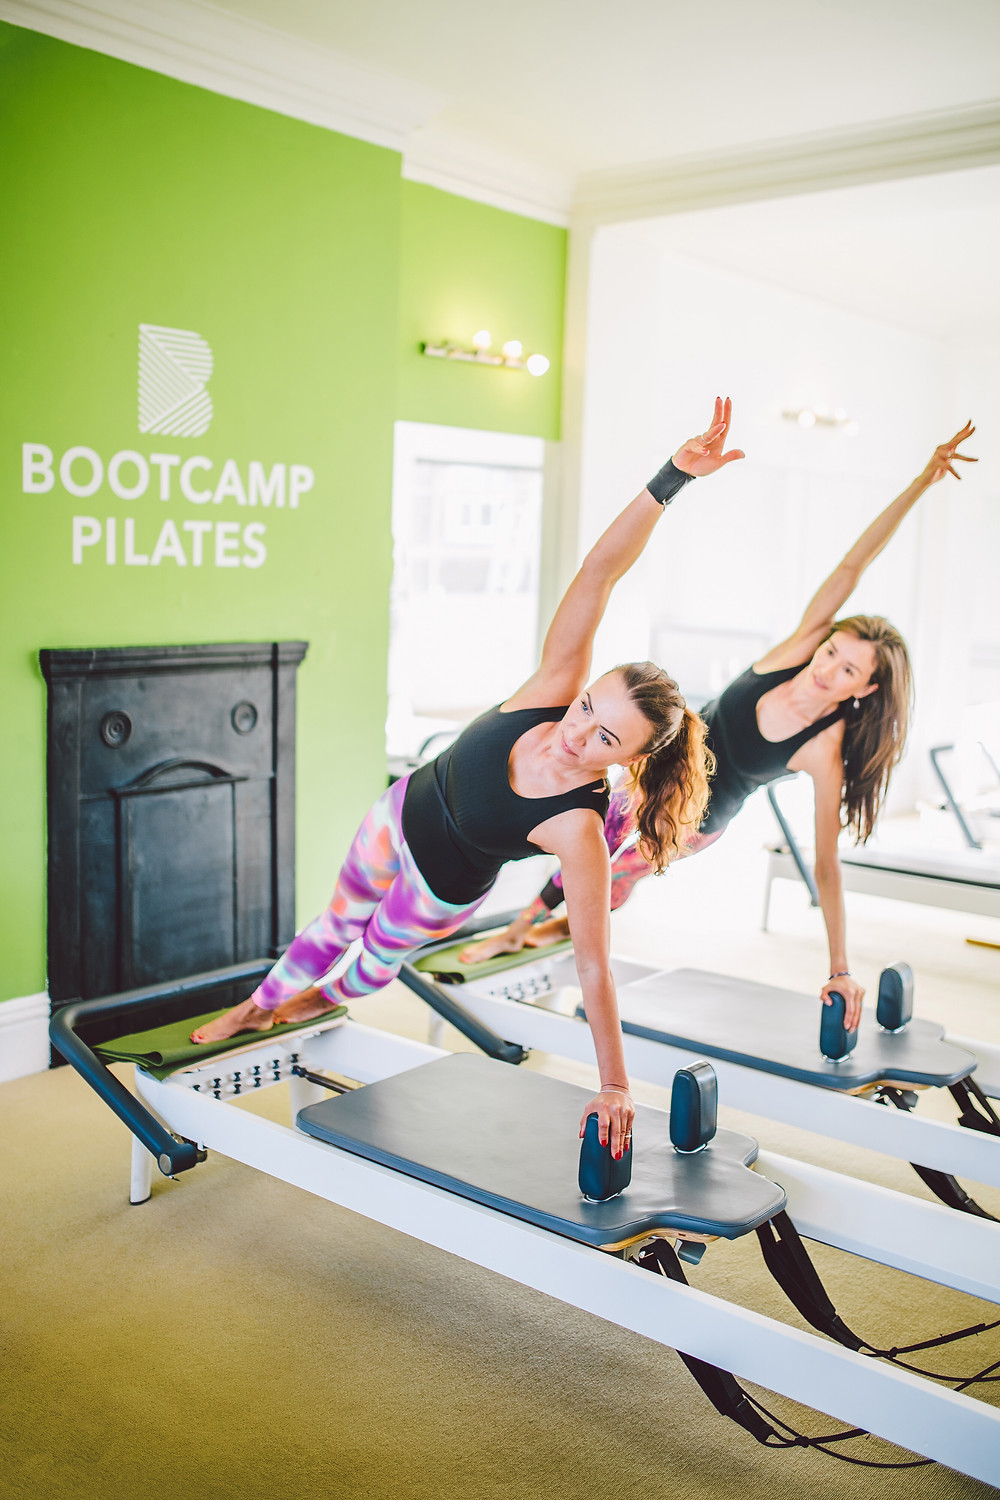 Workout on the Reformer Pilates machines